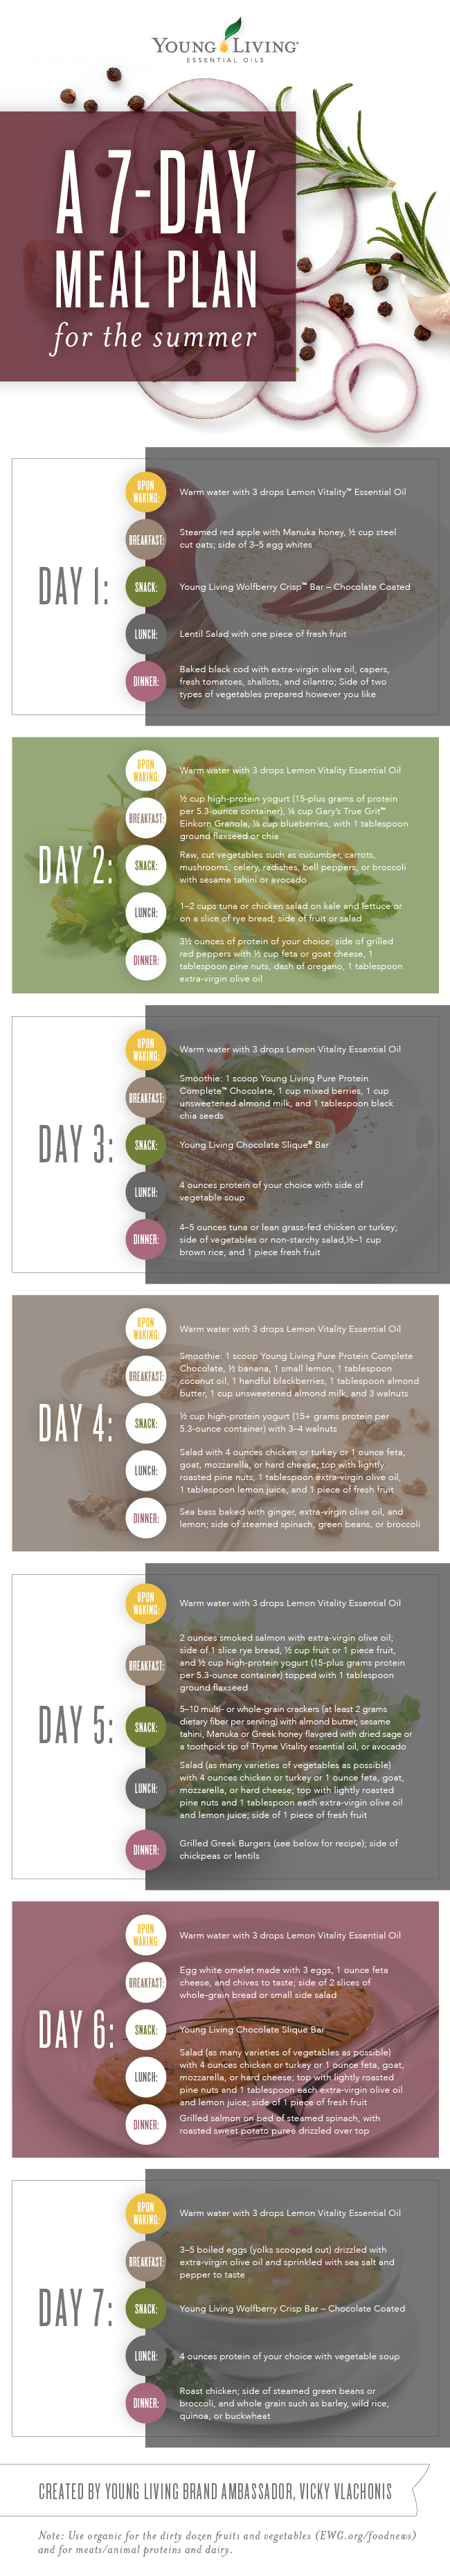 7-Day Meal Plan Infographic